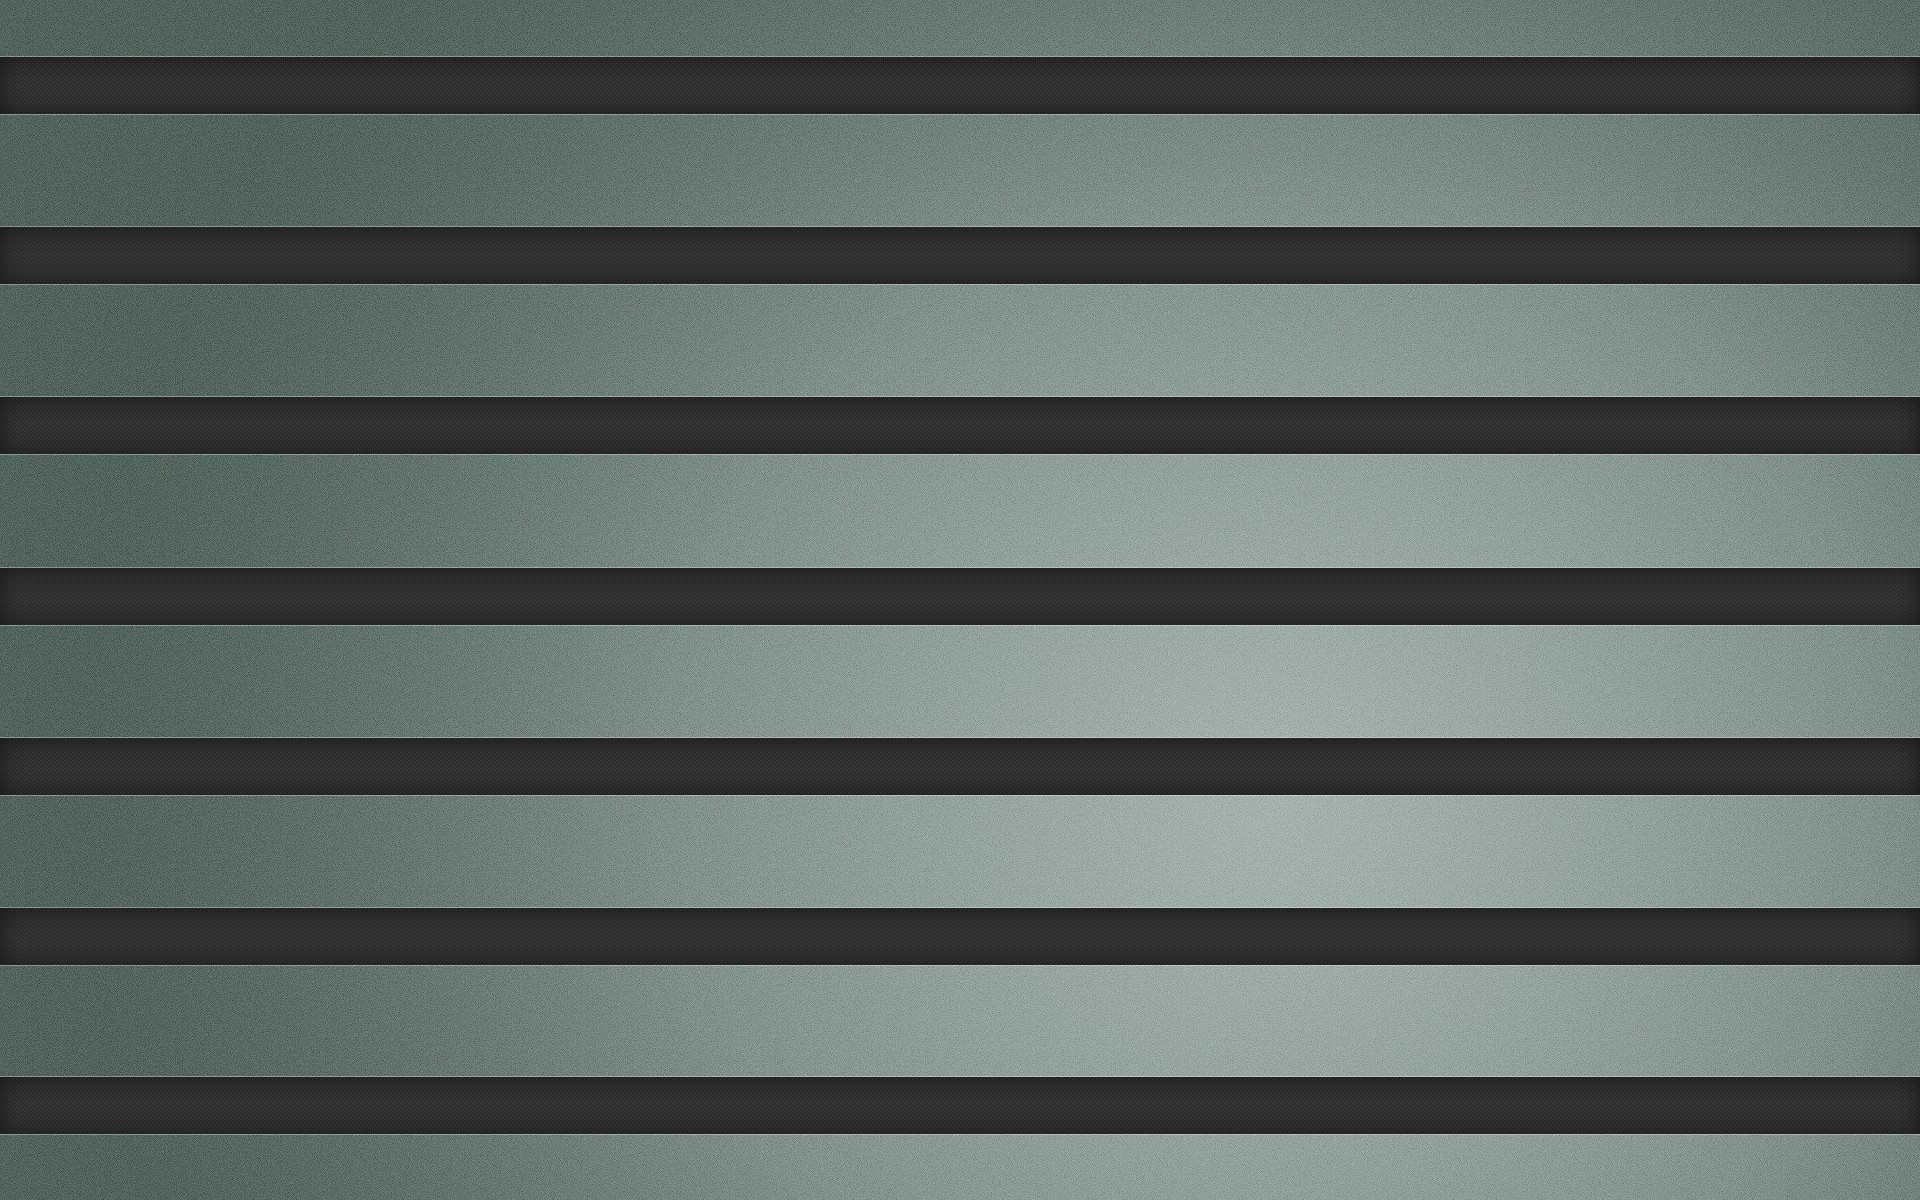 simple-stripes-abstract-wallpaper